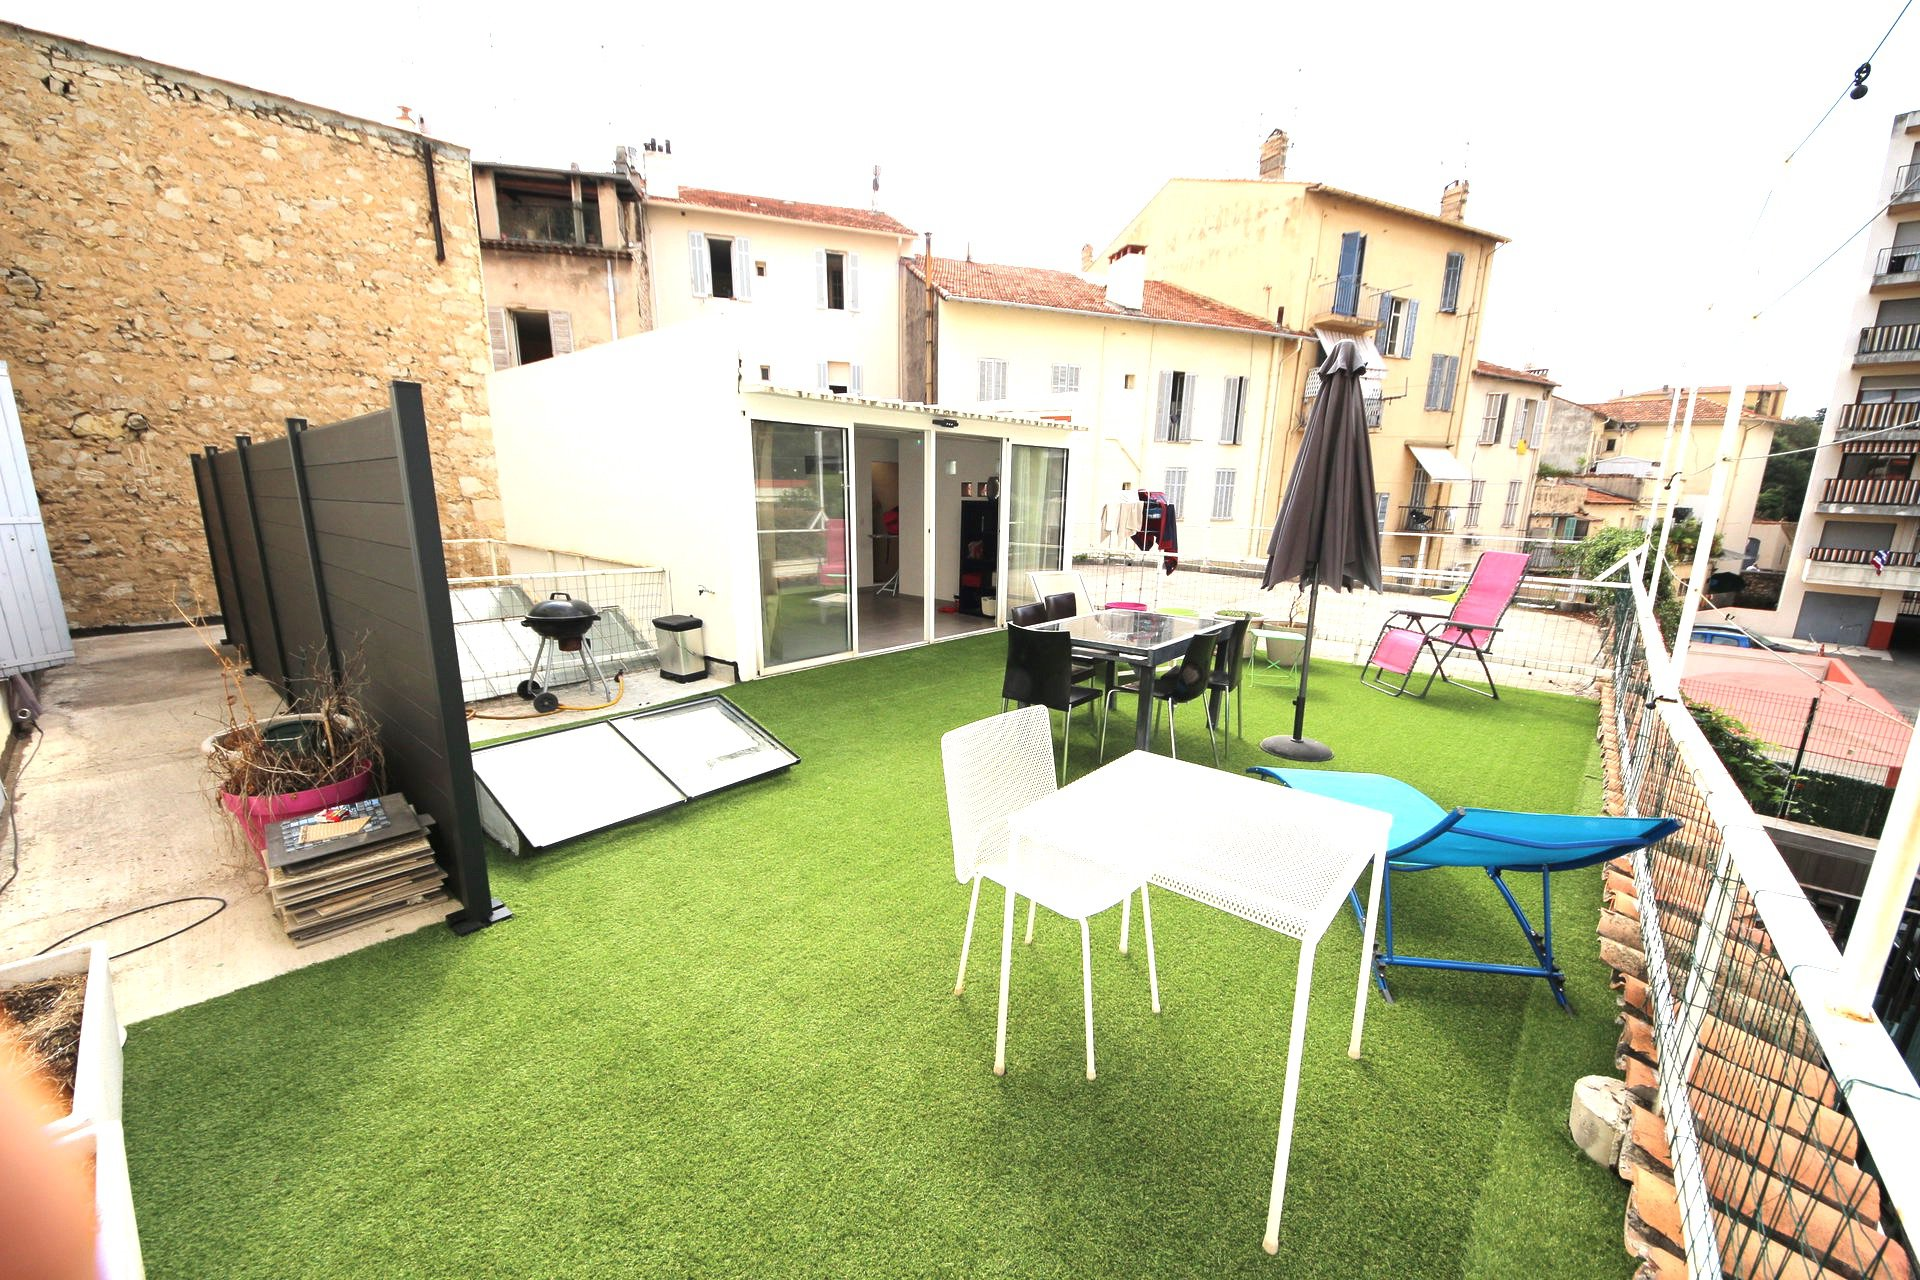 Cannes Downtown Charming 4 bedroom House with terrace of 80sqm